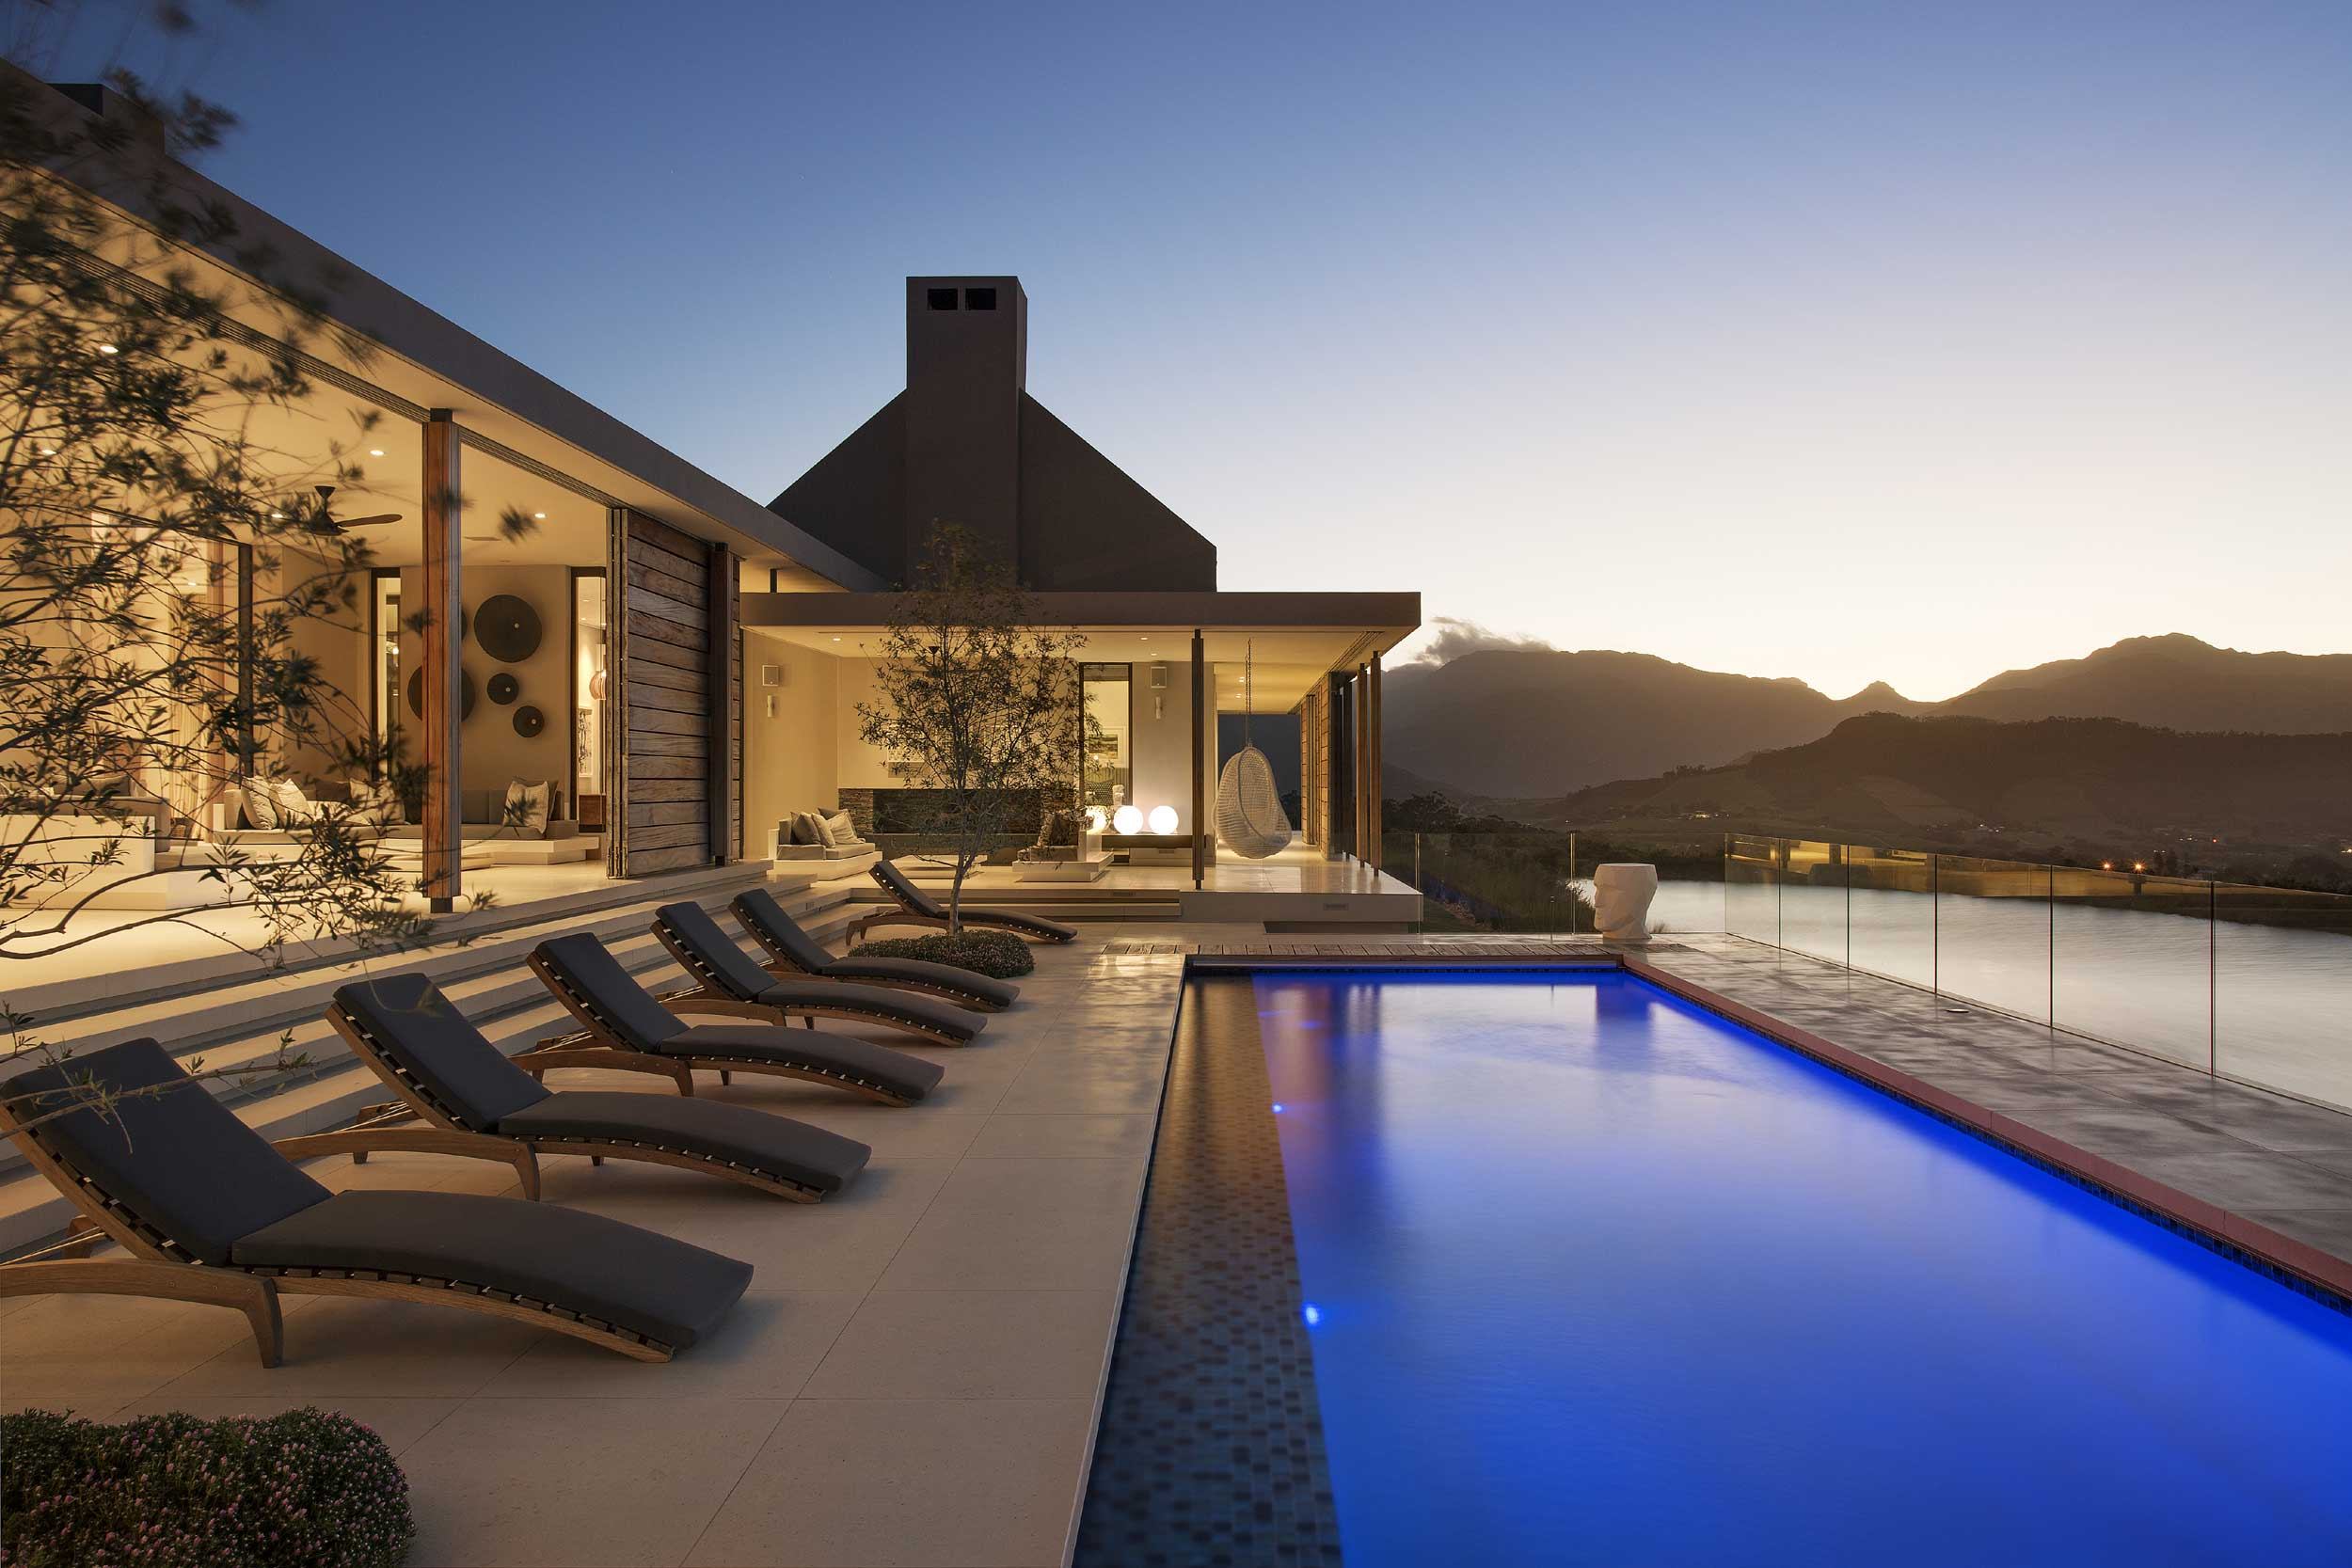 Located in Franschhoek, in one of the most beautiful wine producing valleys in the world, this exceptional property overlooks a beautiful dam and enjoys unparalleled views of the Franschhoek valley surrounded by wine producing vineyards.